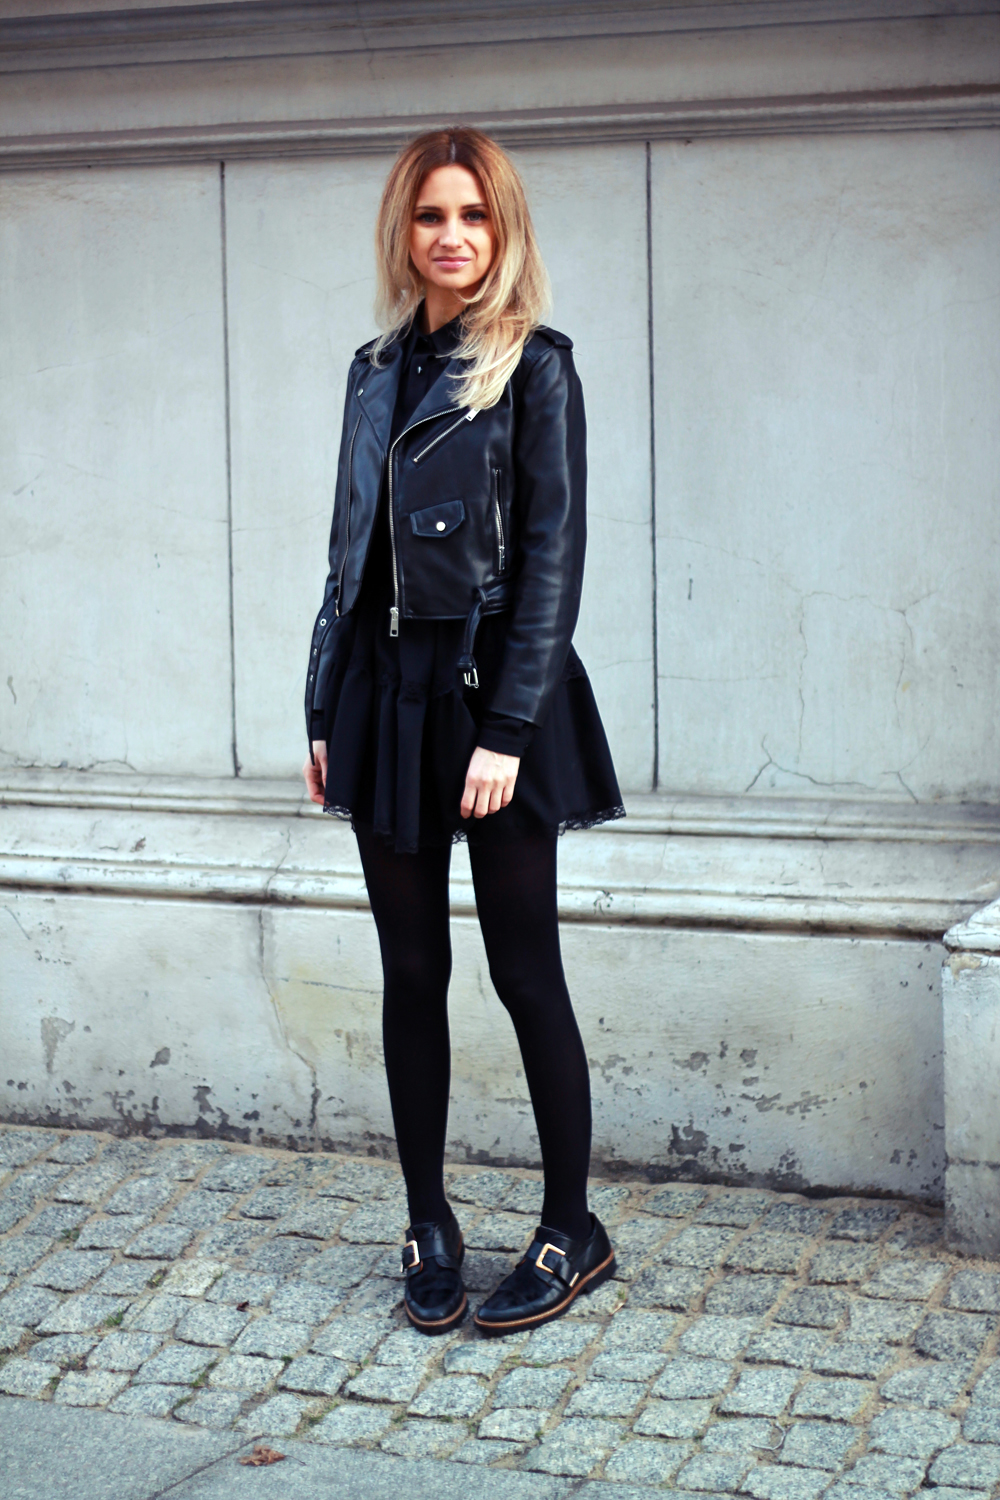 Black dress tumblr - Wear Black Dress Zara Leather Jacket Blonde Tumblr Girl Look Lookbook Street Fashion Style